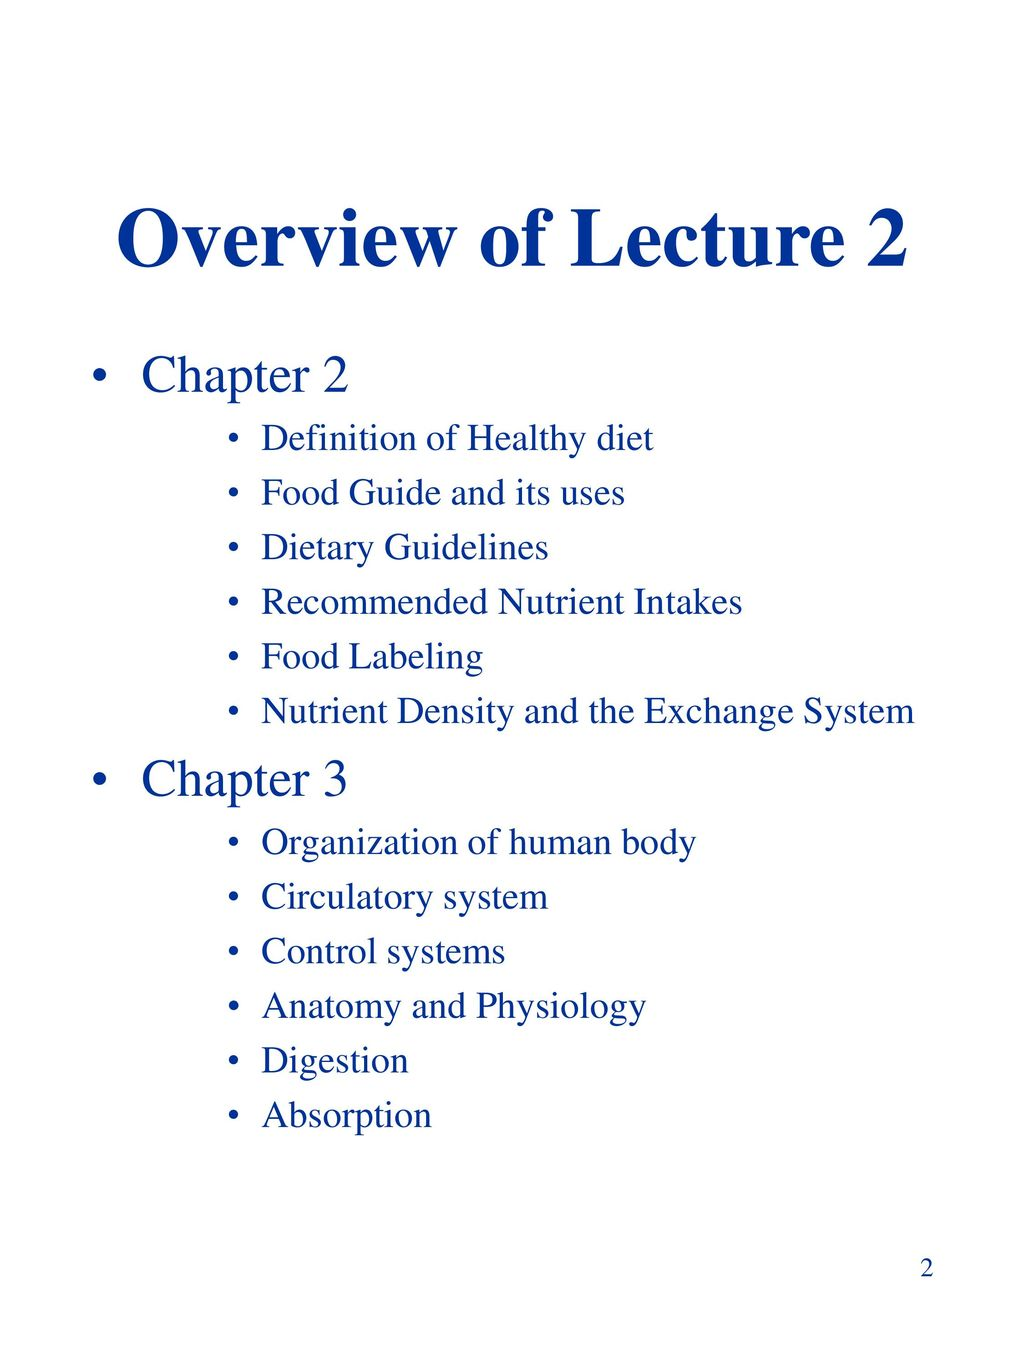 Chapter 2 Tools For Diet Design Chapter 3 Human Body Ppt Download